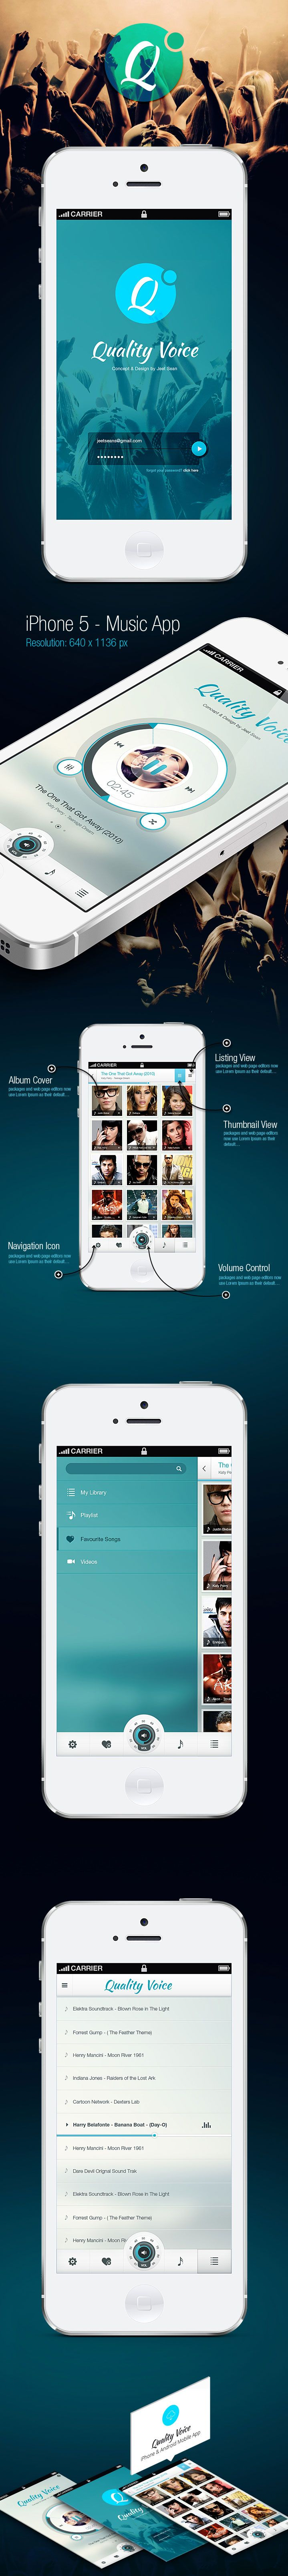 Quality Voice - Mobile App UI | #musicplayer